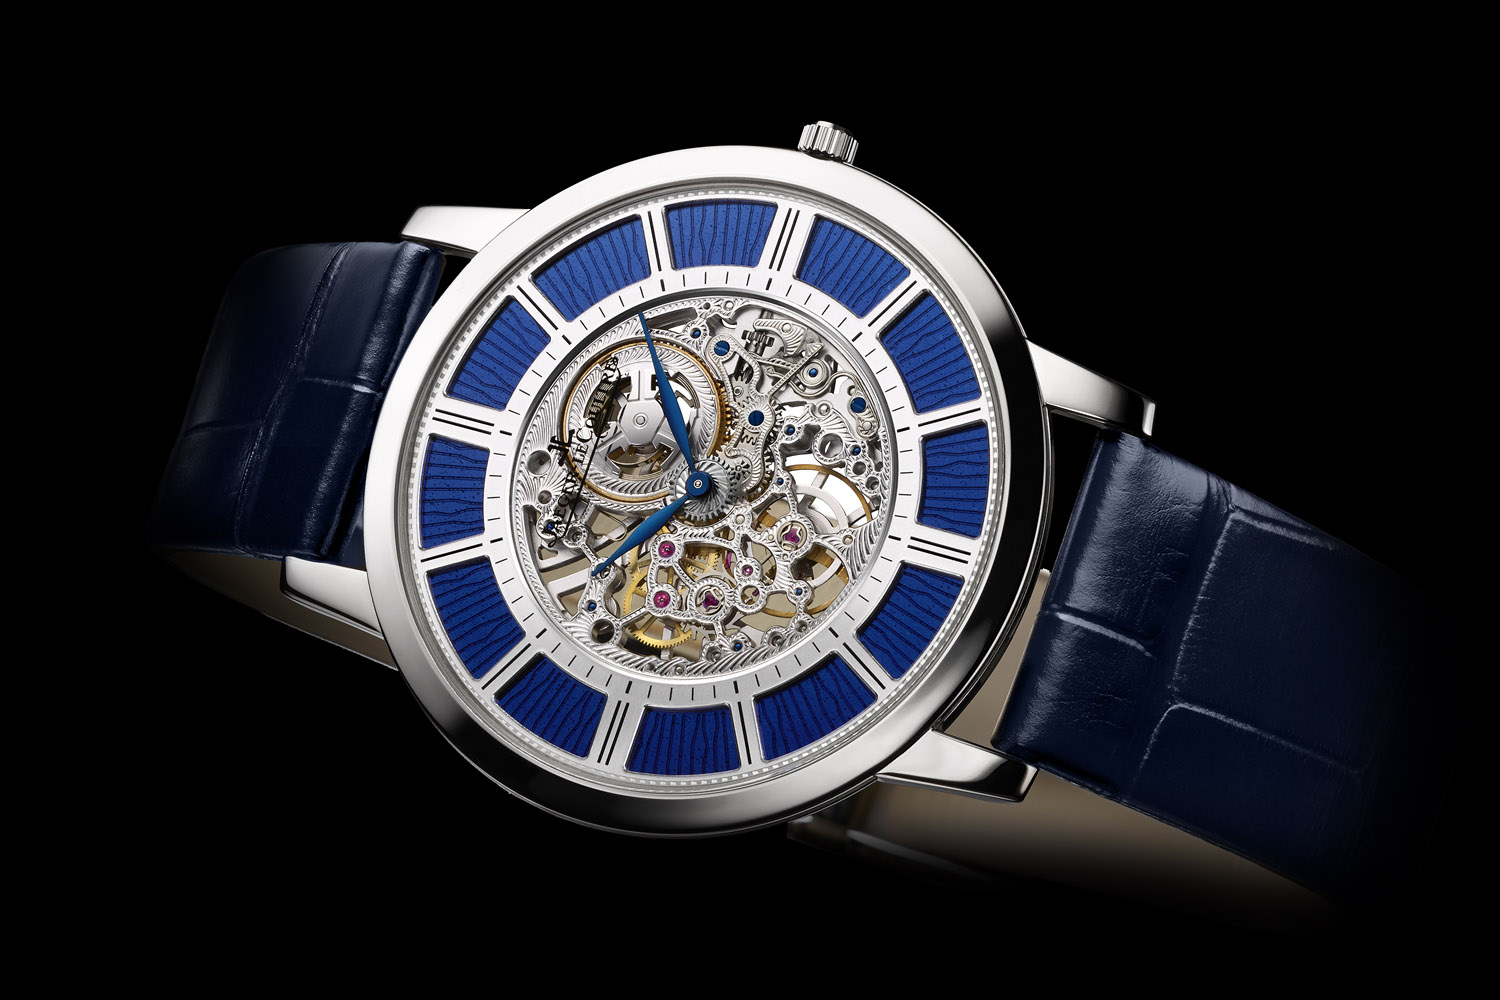 Jaeger LeCoultre Master Ultra Thin Squelette - world's Thinnest mechanical watch